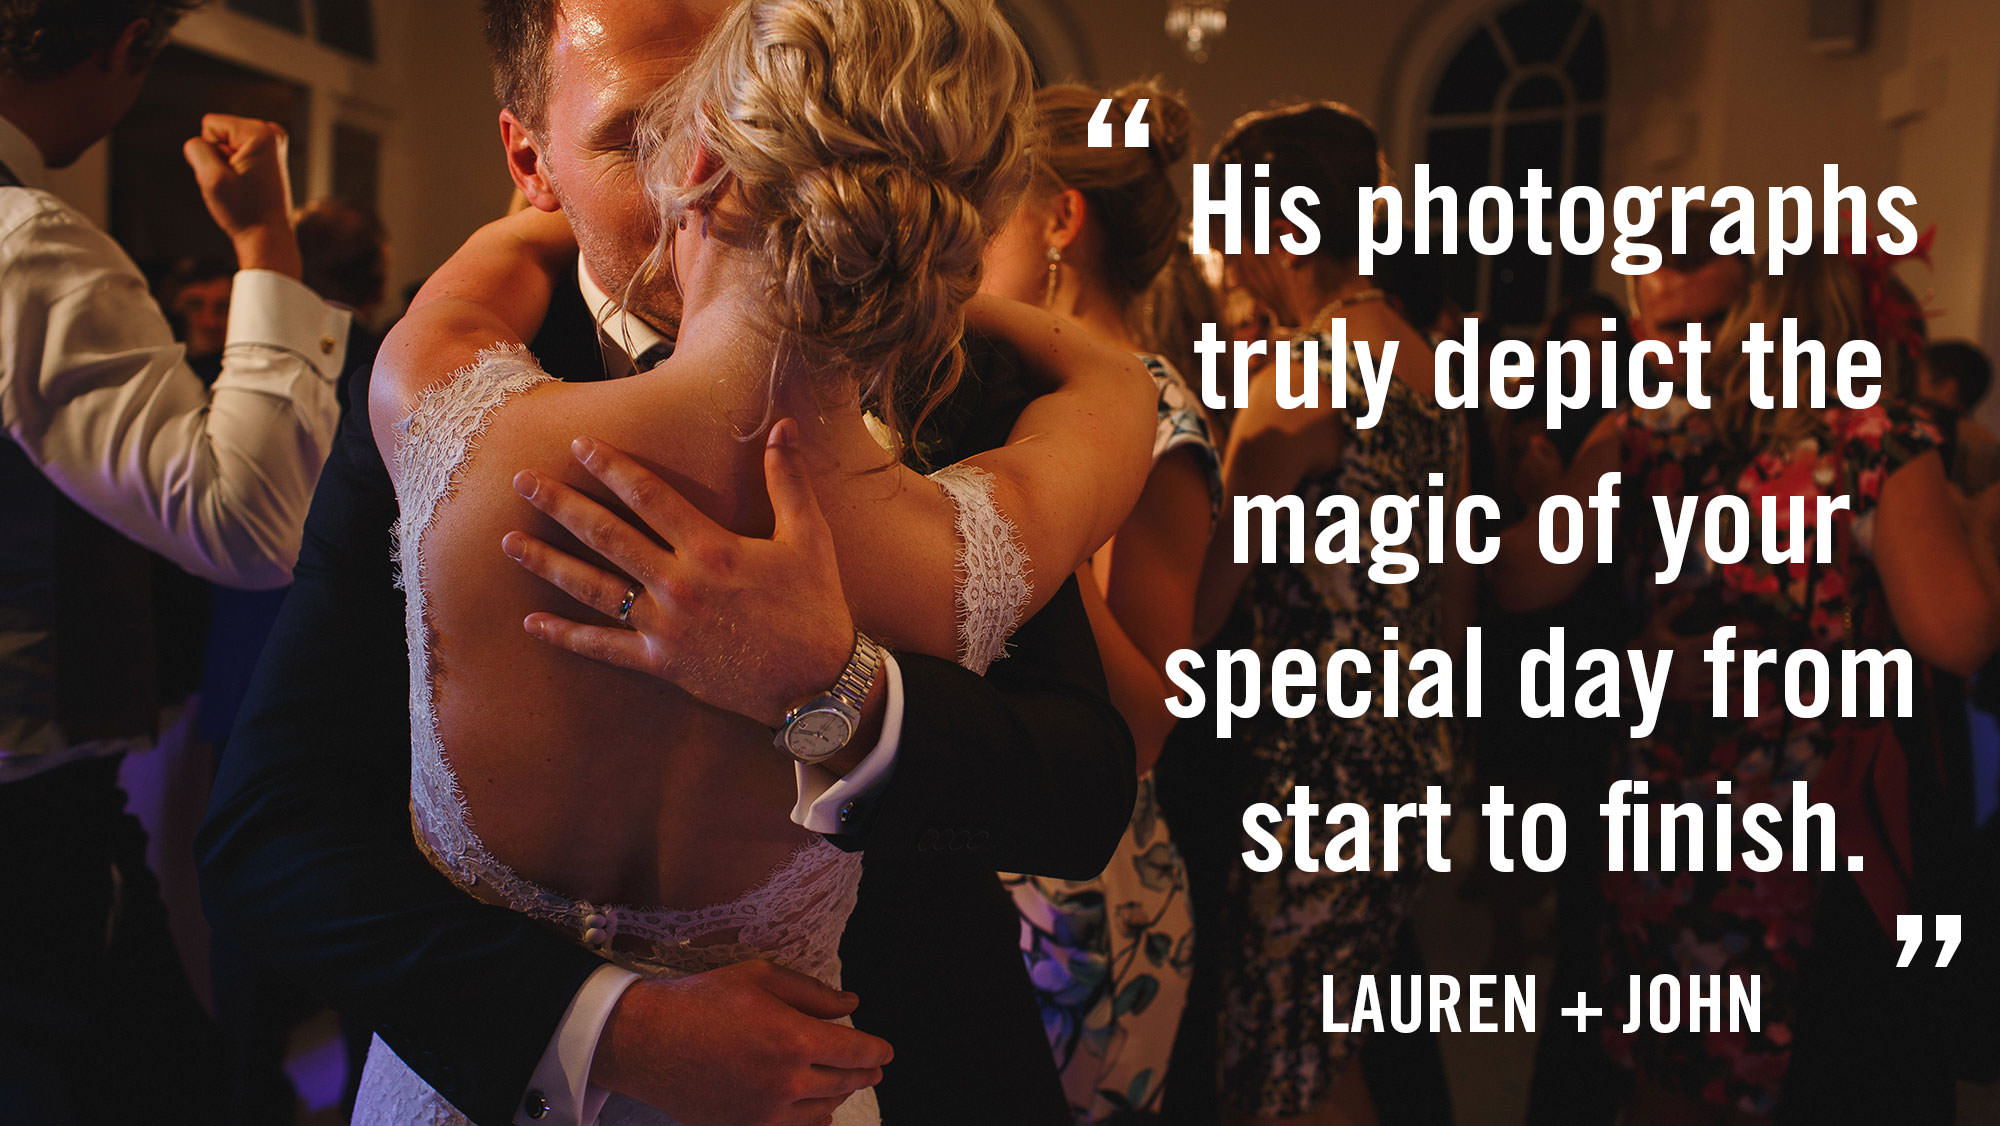 Wedding photography reviews 08